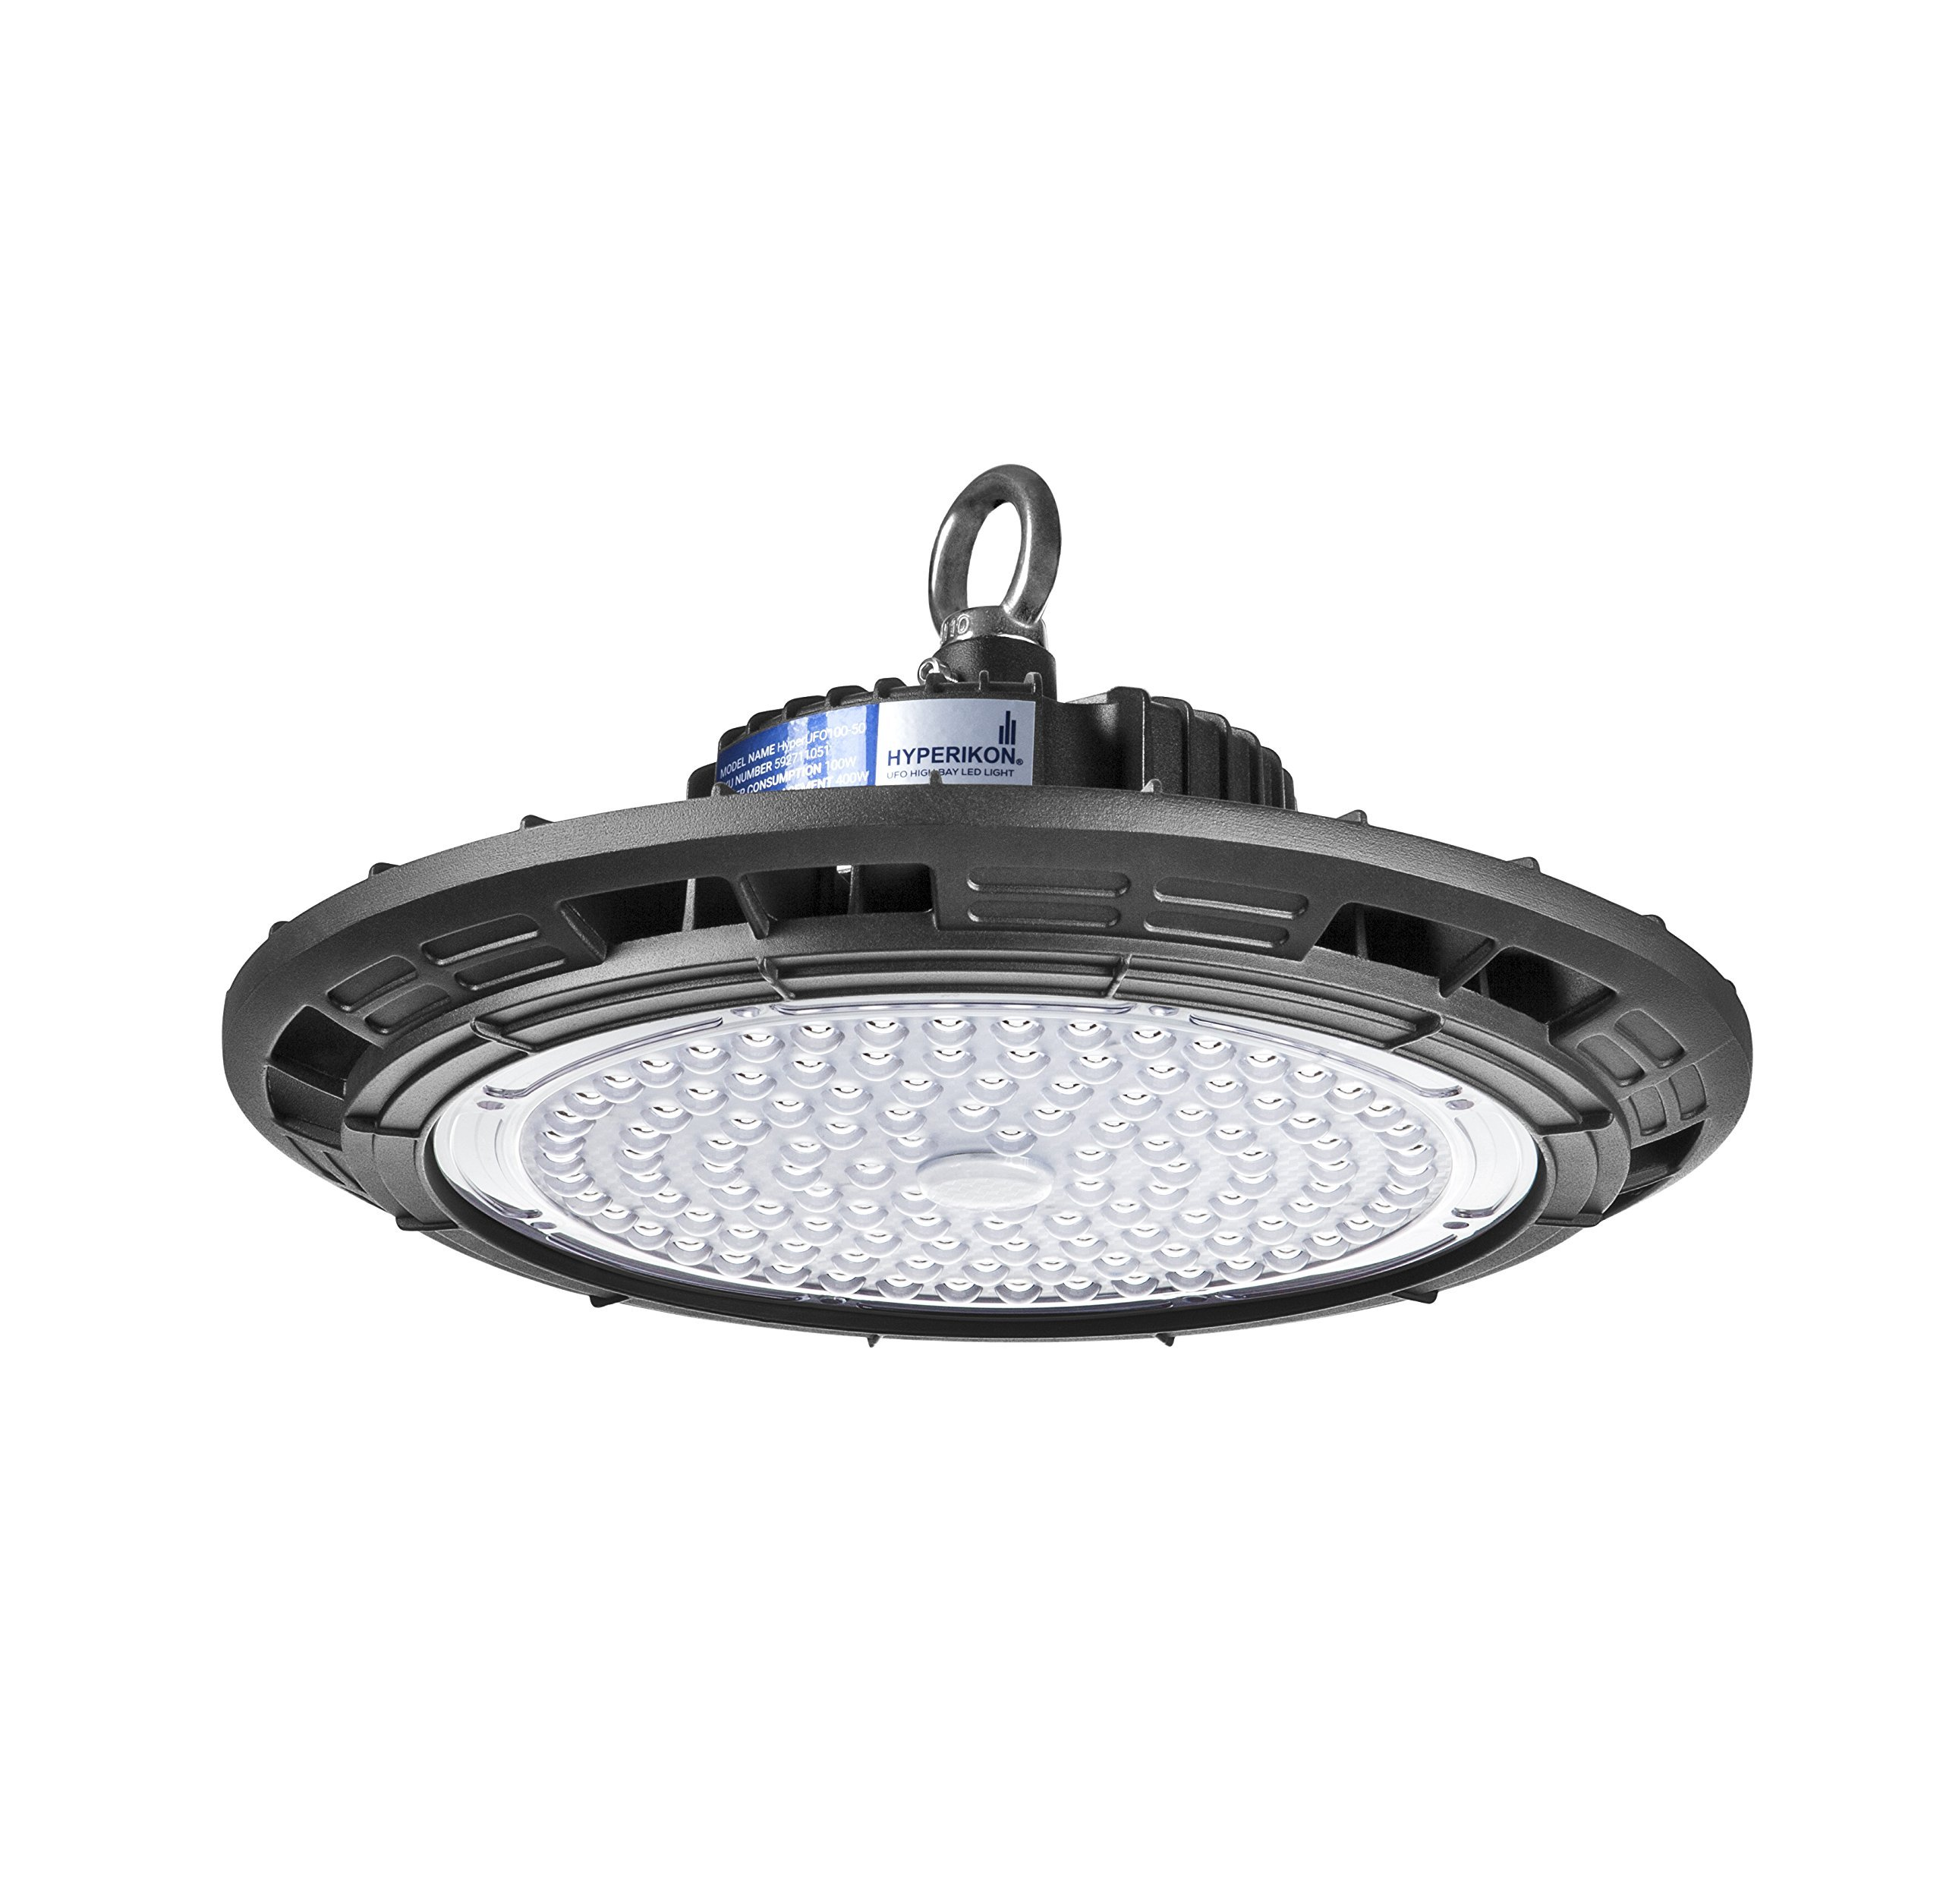 Hyperikon LED UFO High Bay Light, 150W (600W HID/HPS equivalent), 18,000 lumens, 5000K (Crystal White Glow), Super Bright Indoor Area Warehouse Lighting, DLC & UL Listed